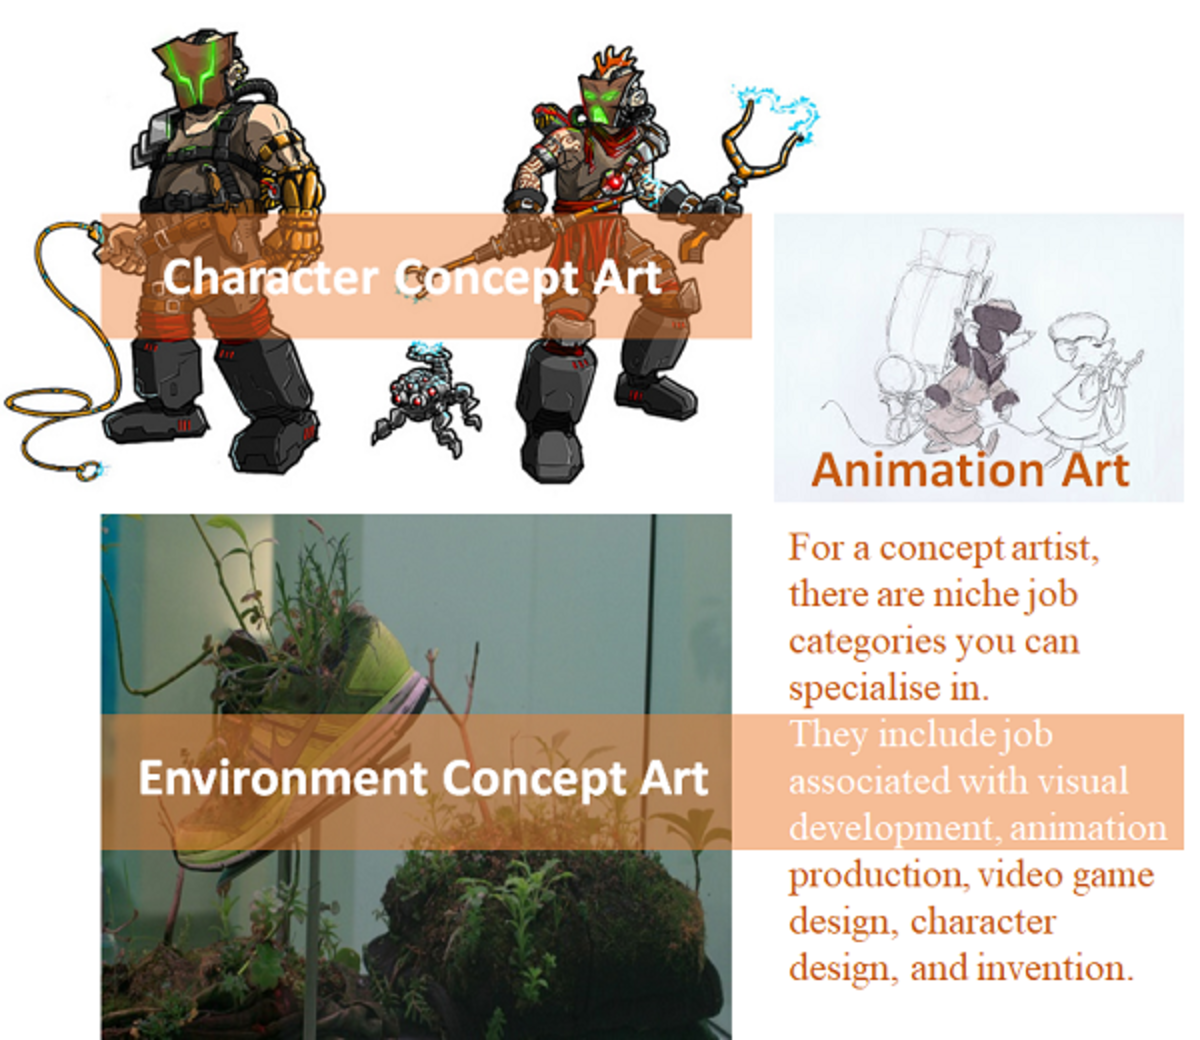 Top Concept Artist Job Opportunities  - Game Art and Design Industry